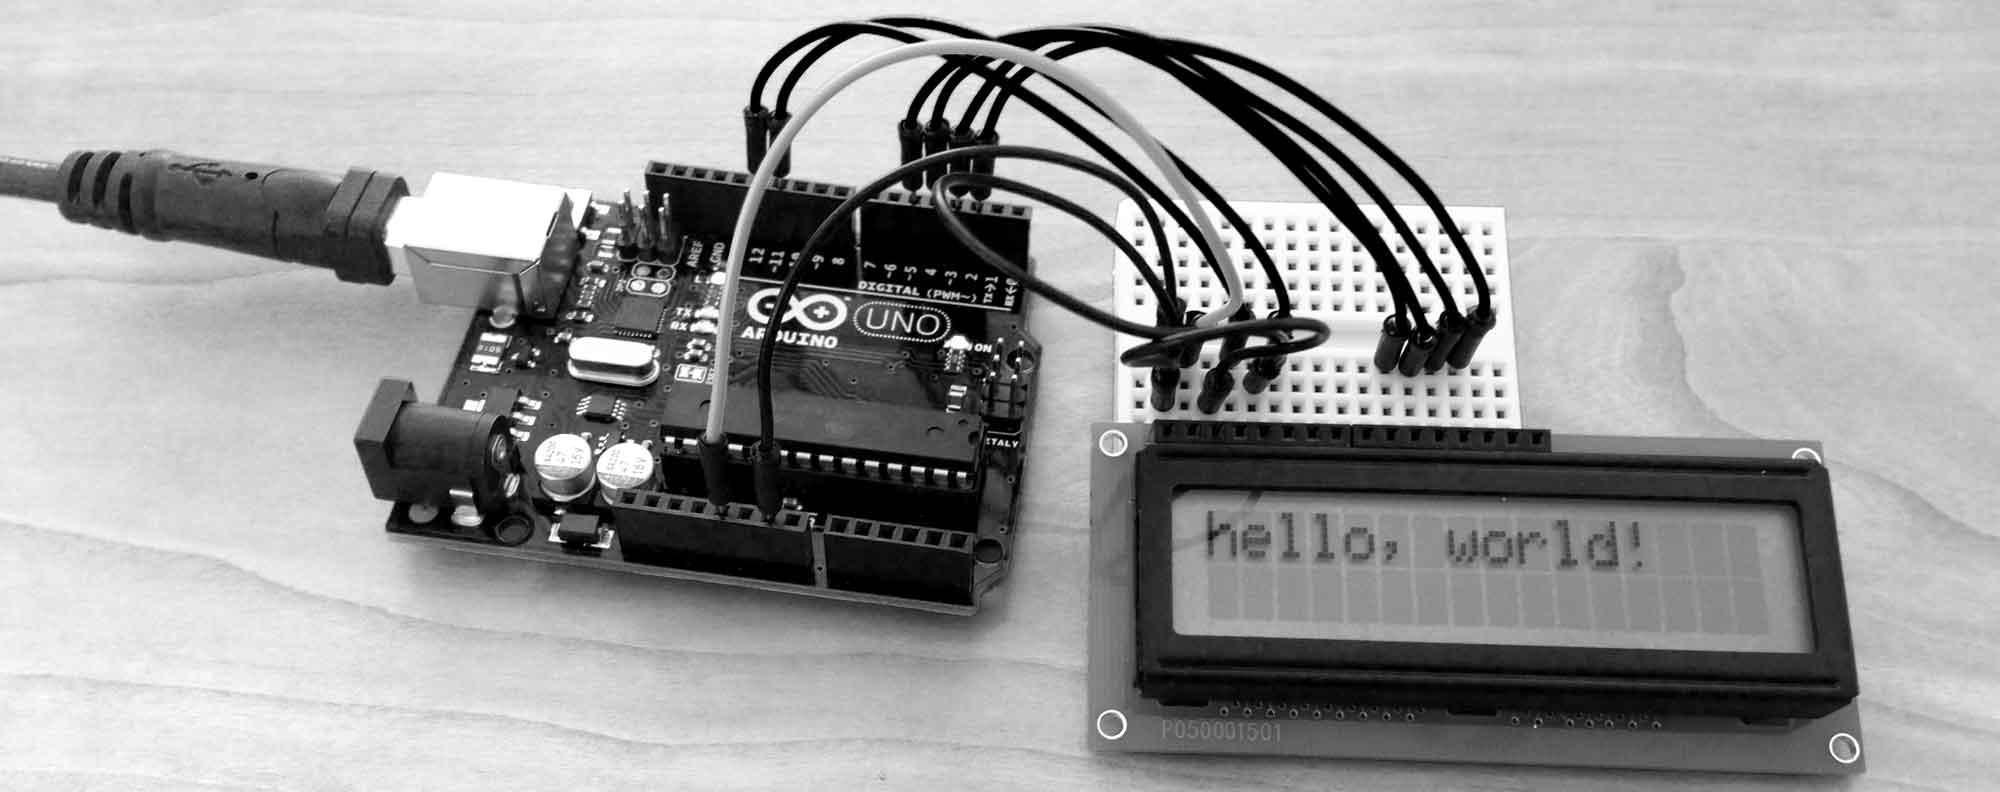 Bit field struct arduino software